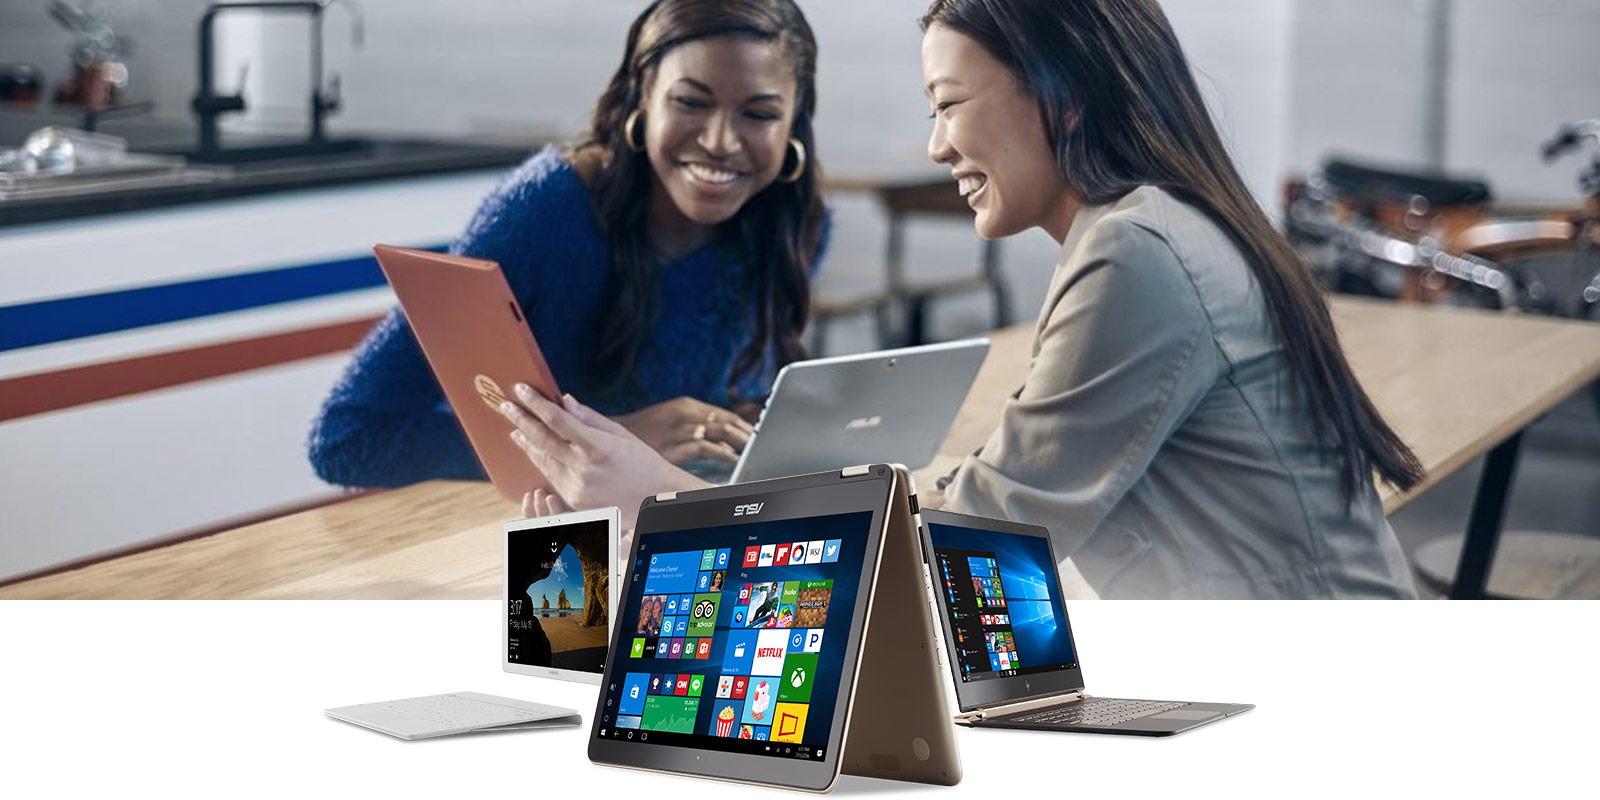 Windows 10 PCs and tablets